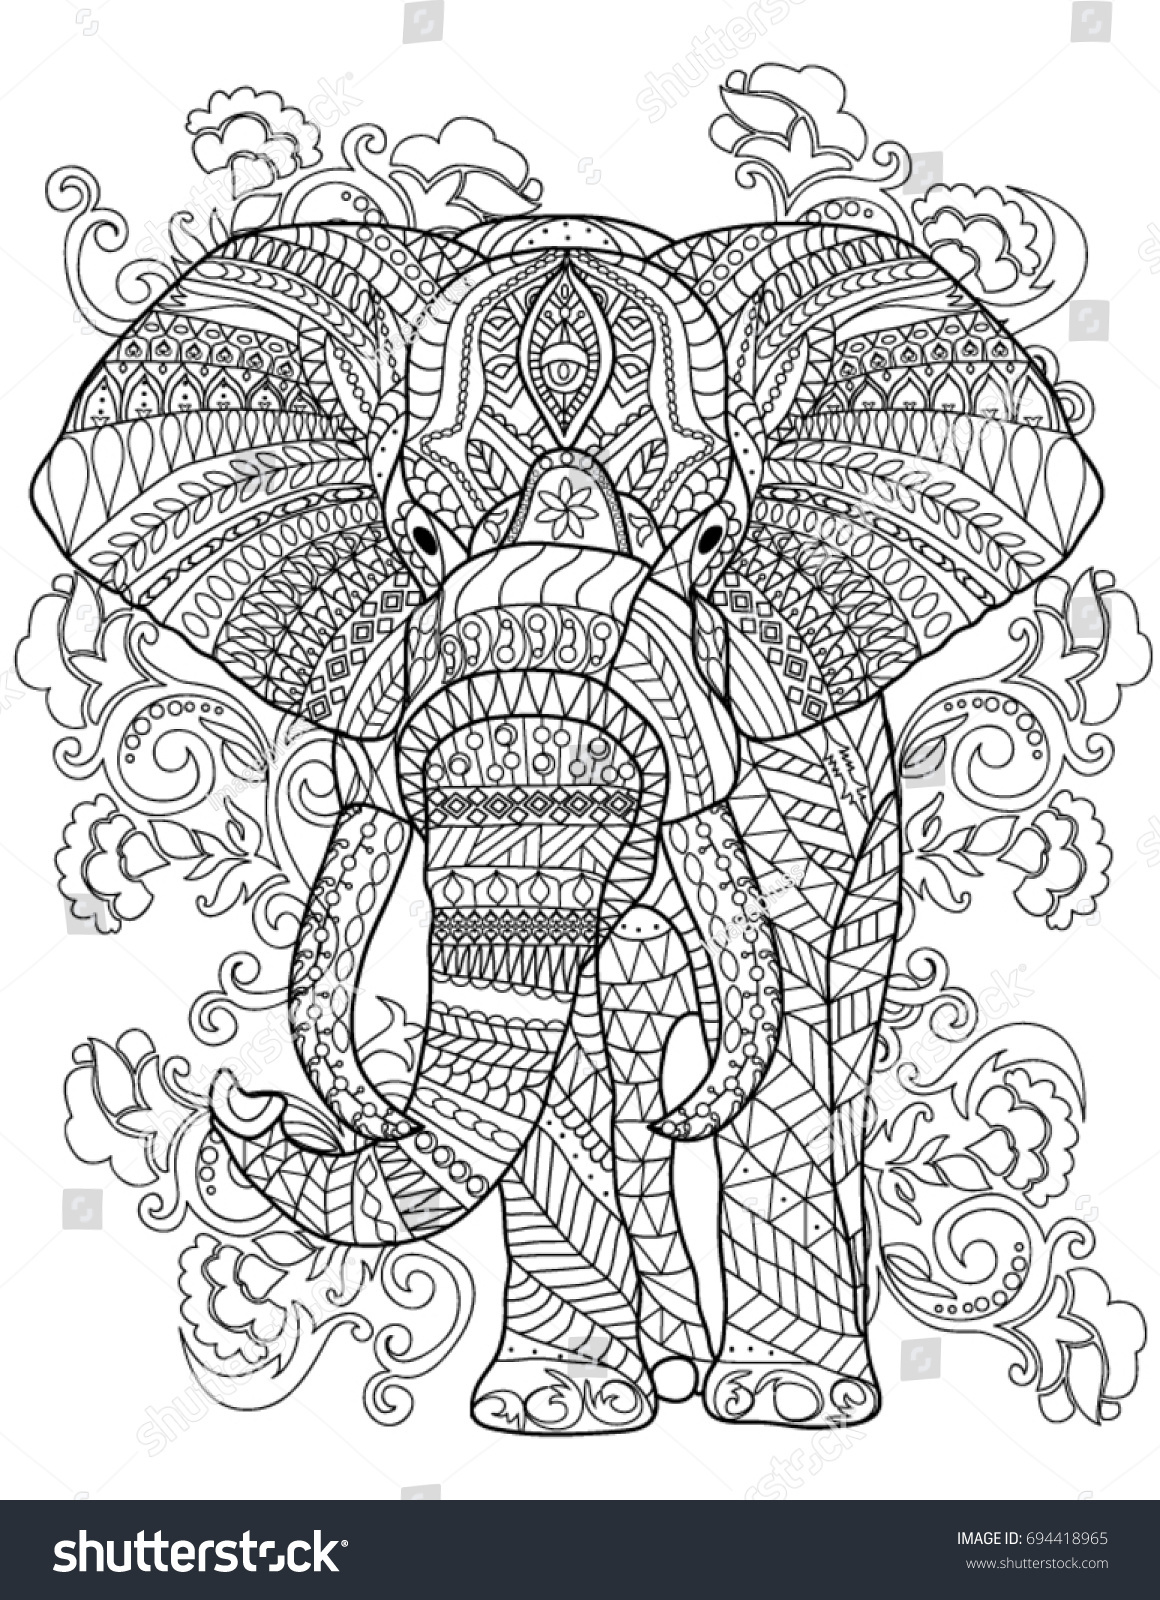 Elephant Coloring Book Page Stock Vector 694418965 - Shutterstock